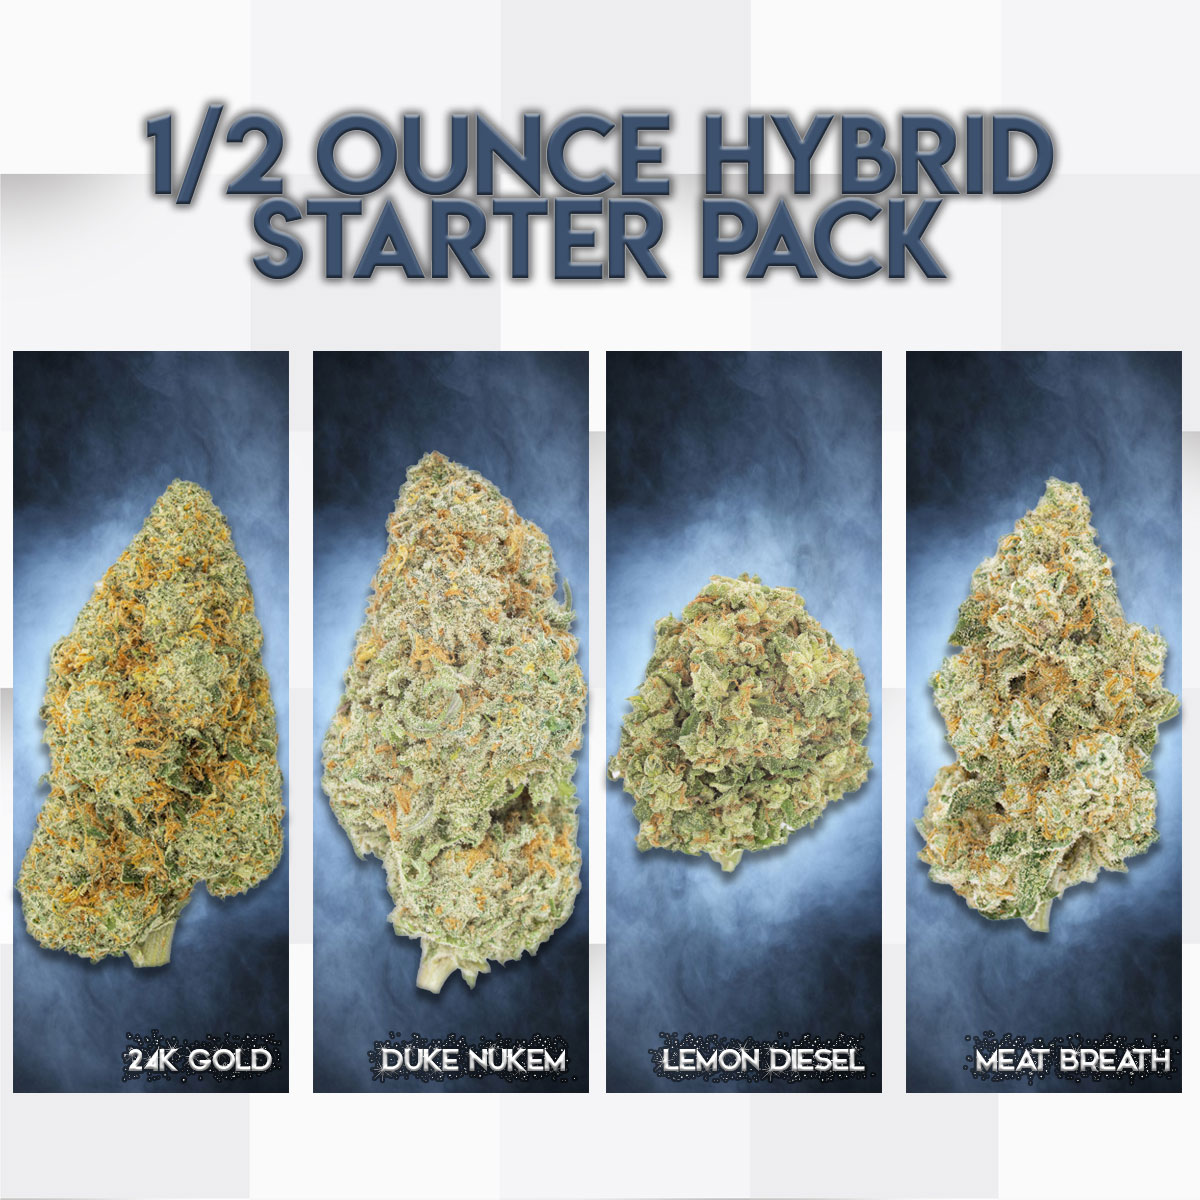 Ounce Hybrid Starter Pack by Green Society - Image © 2018 Green Society. All Rights Reserved.